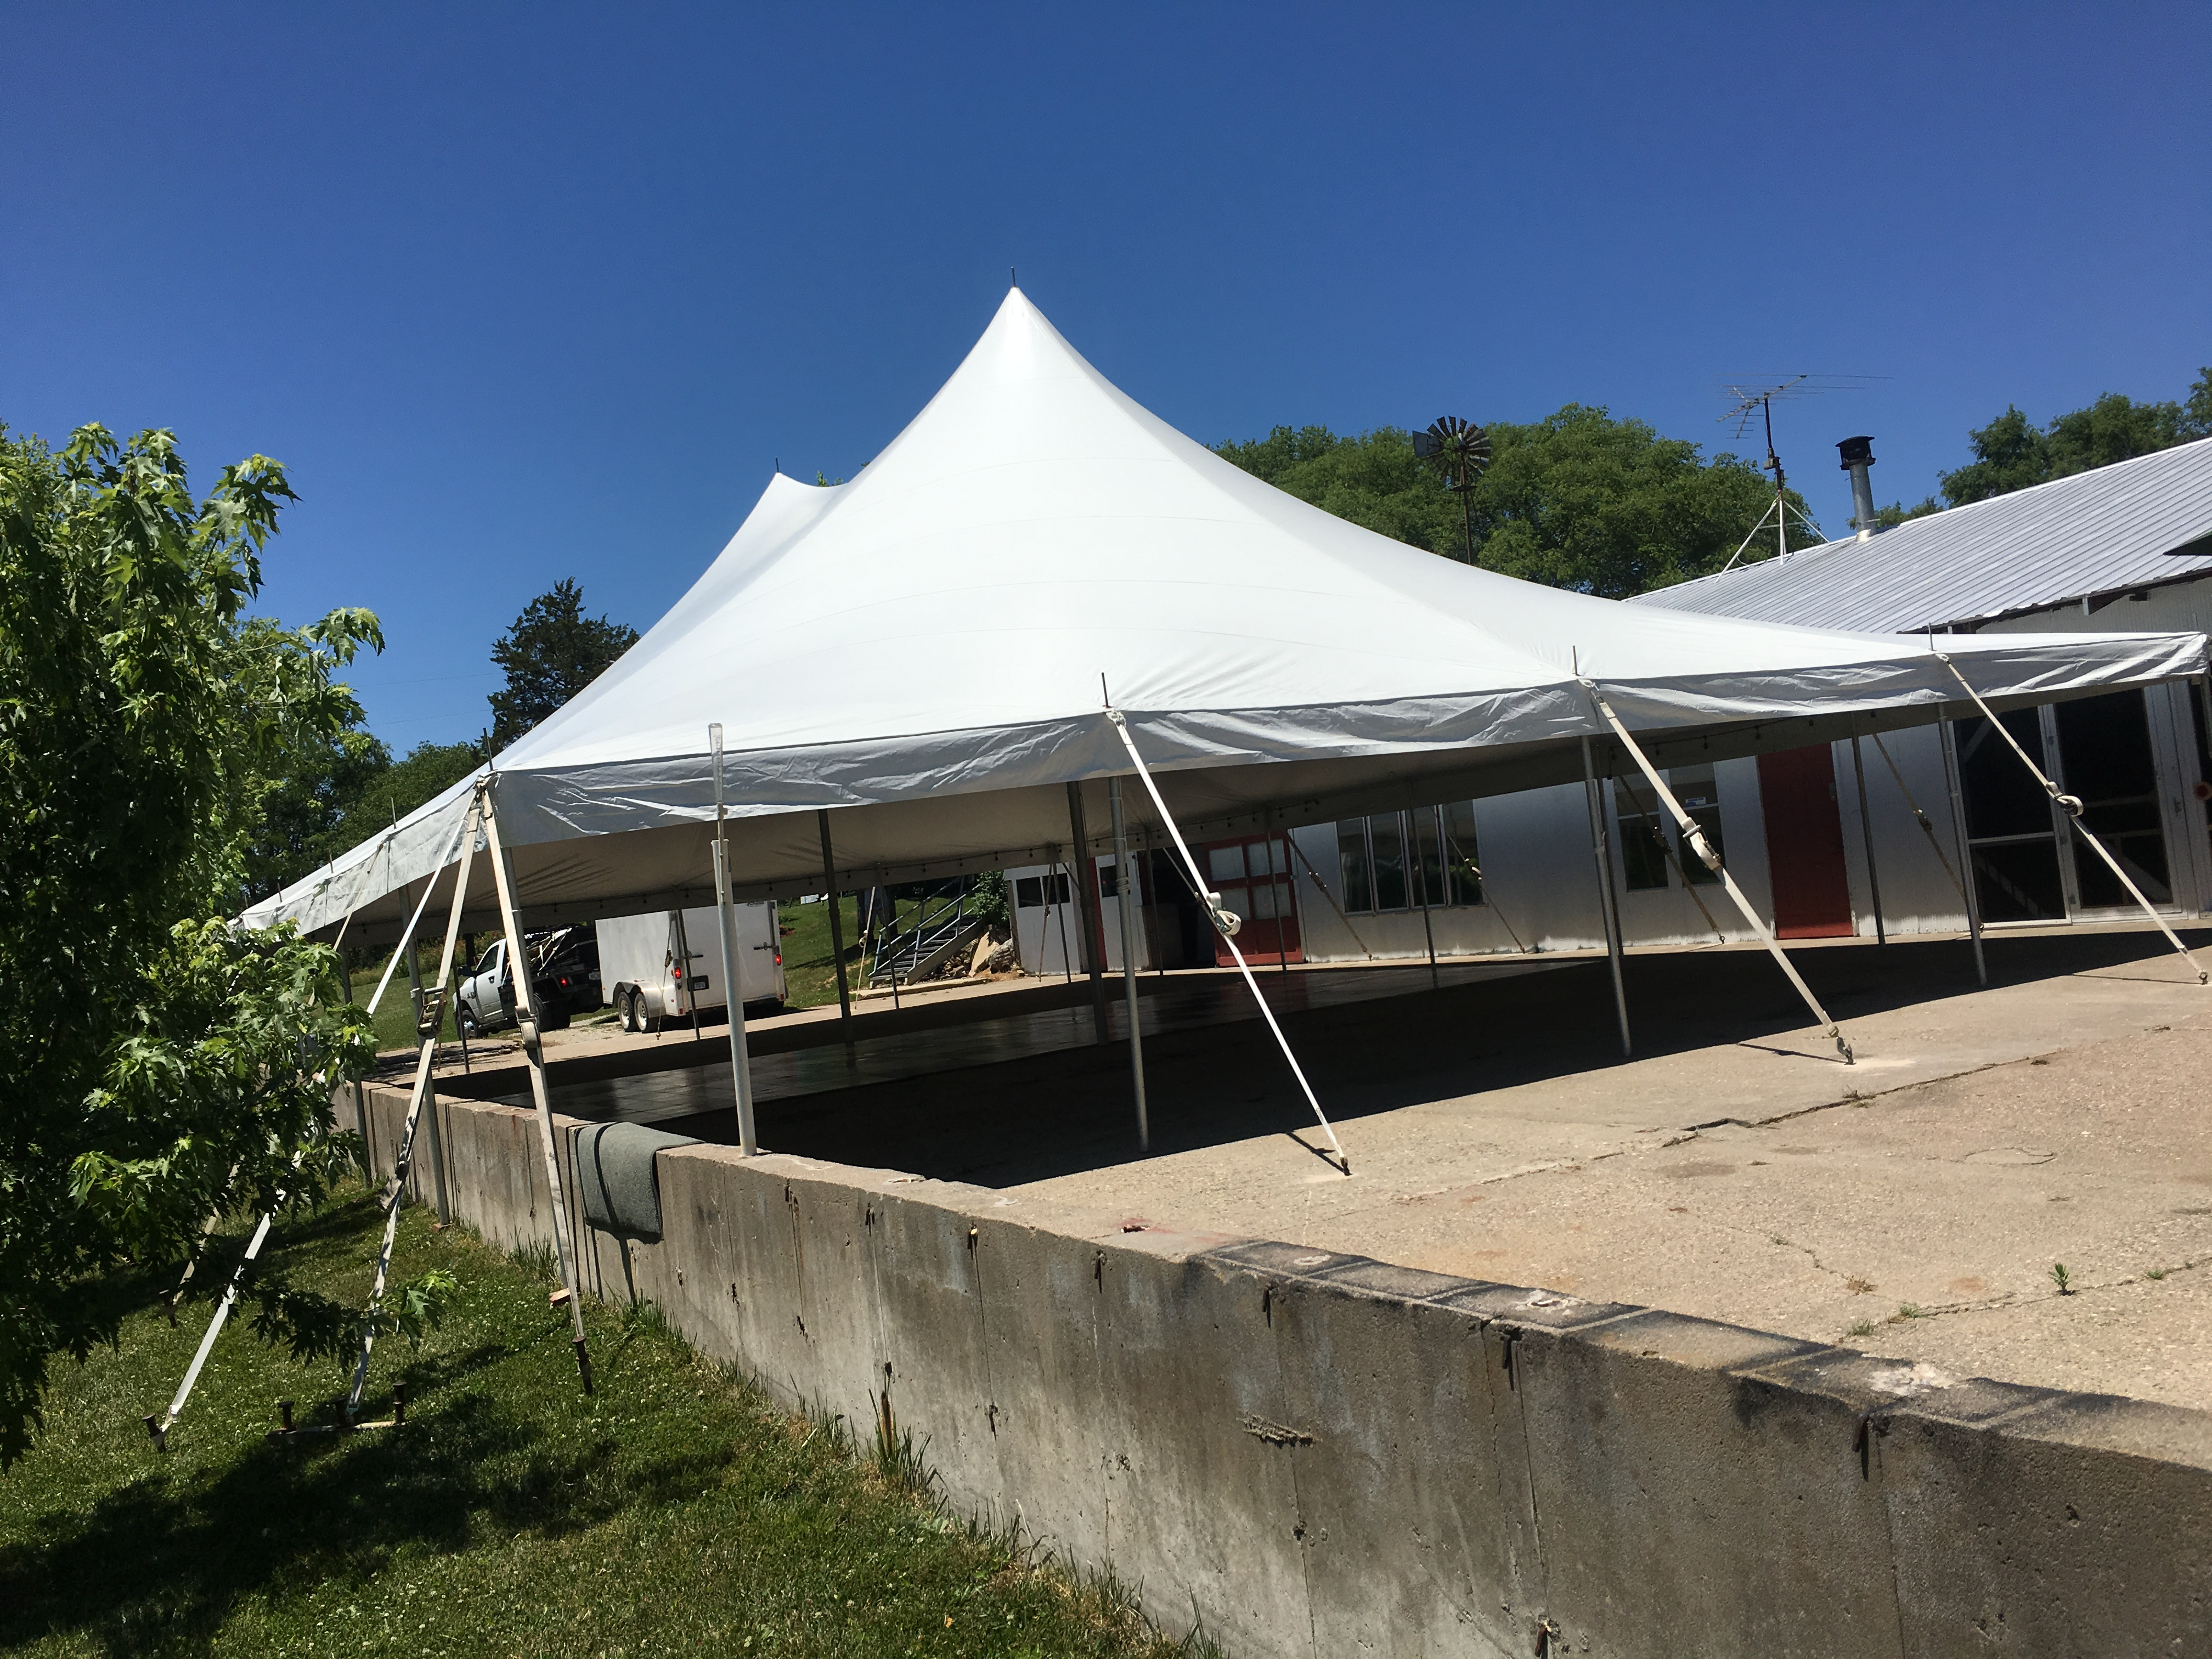 End of 40u0027x60u2032 Rope and Pole Tent with concrete wall obstruction at an outdoor wedding reception in Columbus Junction IA & End of 40u0027x60u0027 Rope and Pole Tent with concrete wall obstruction ...